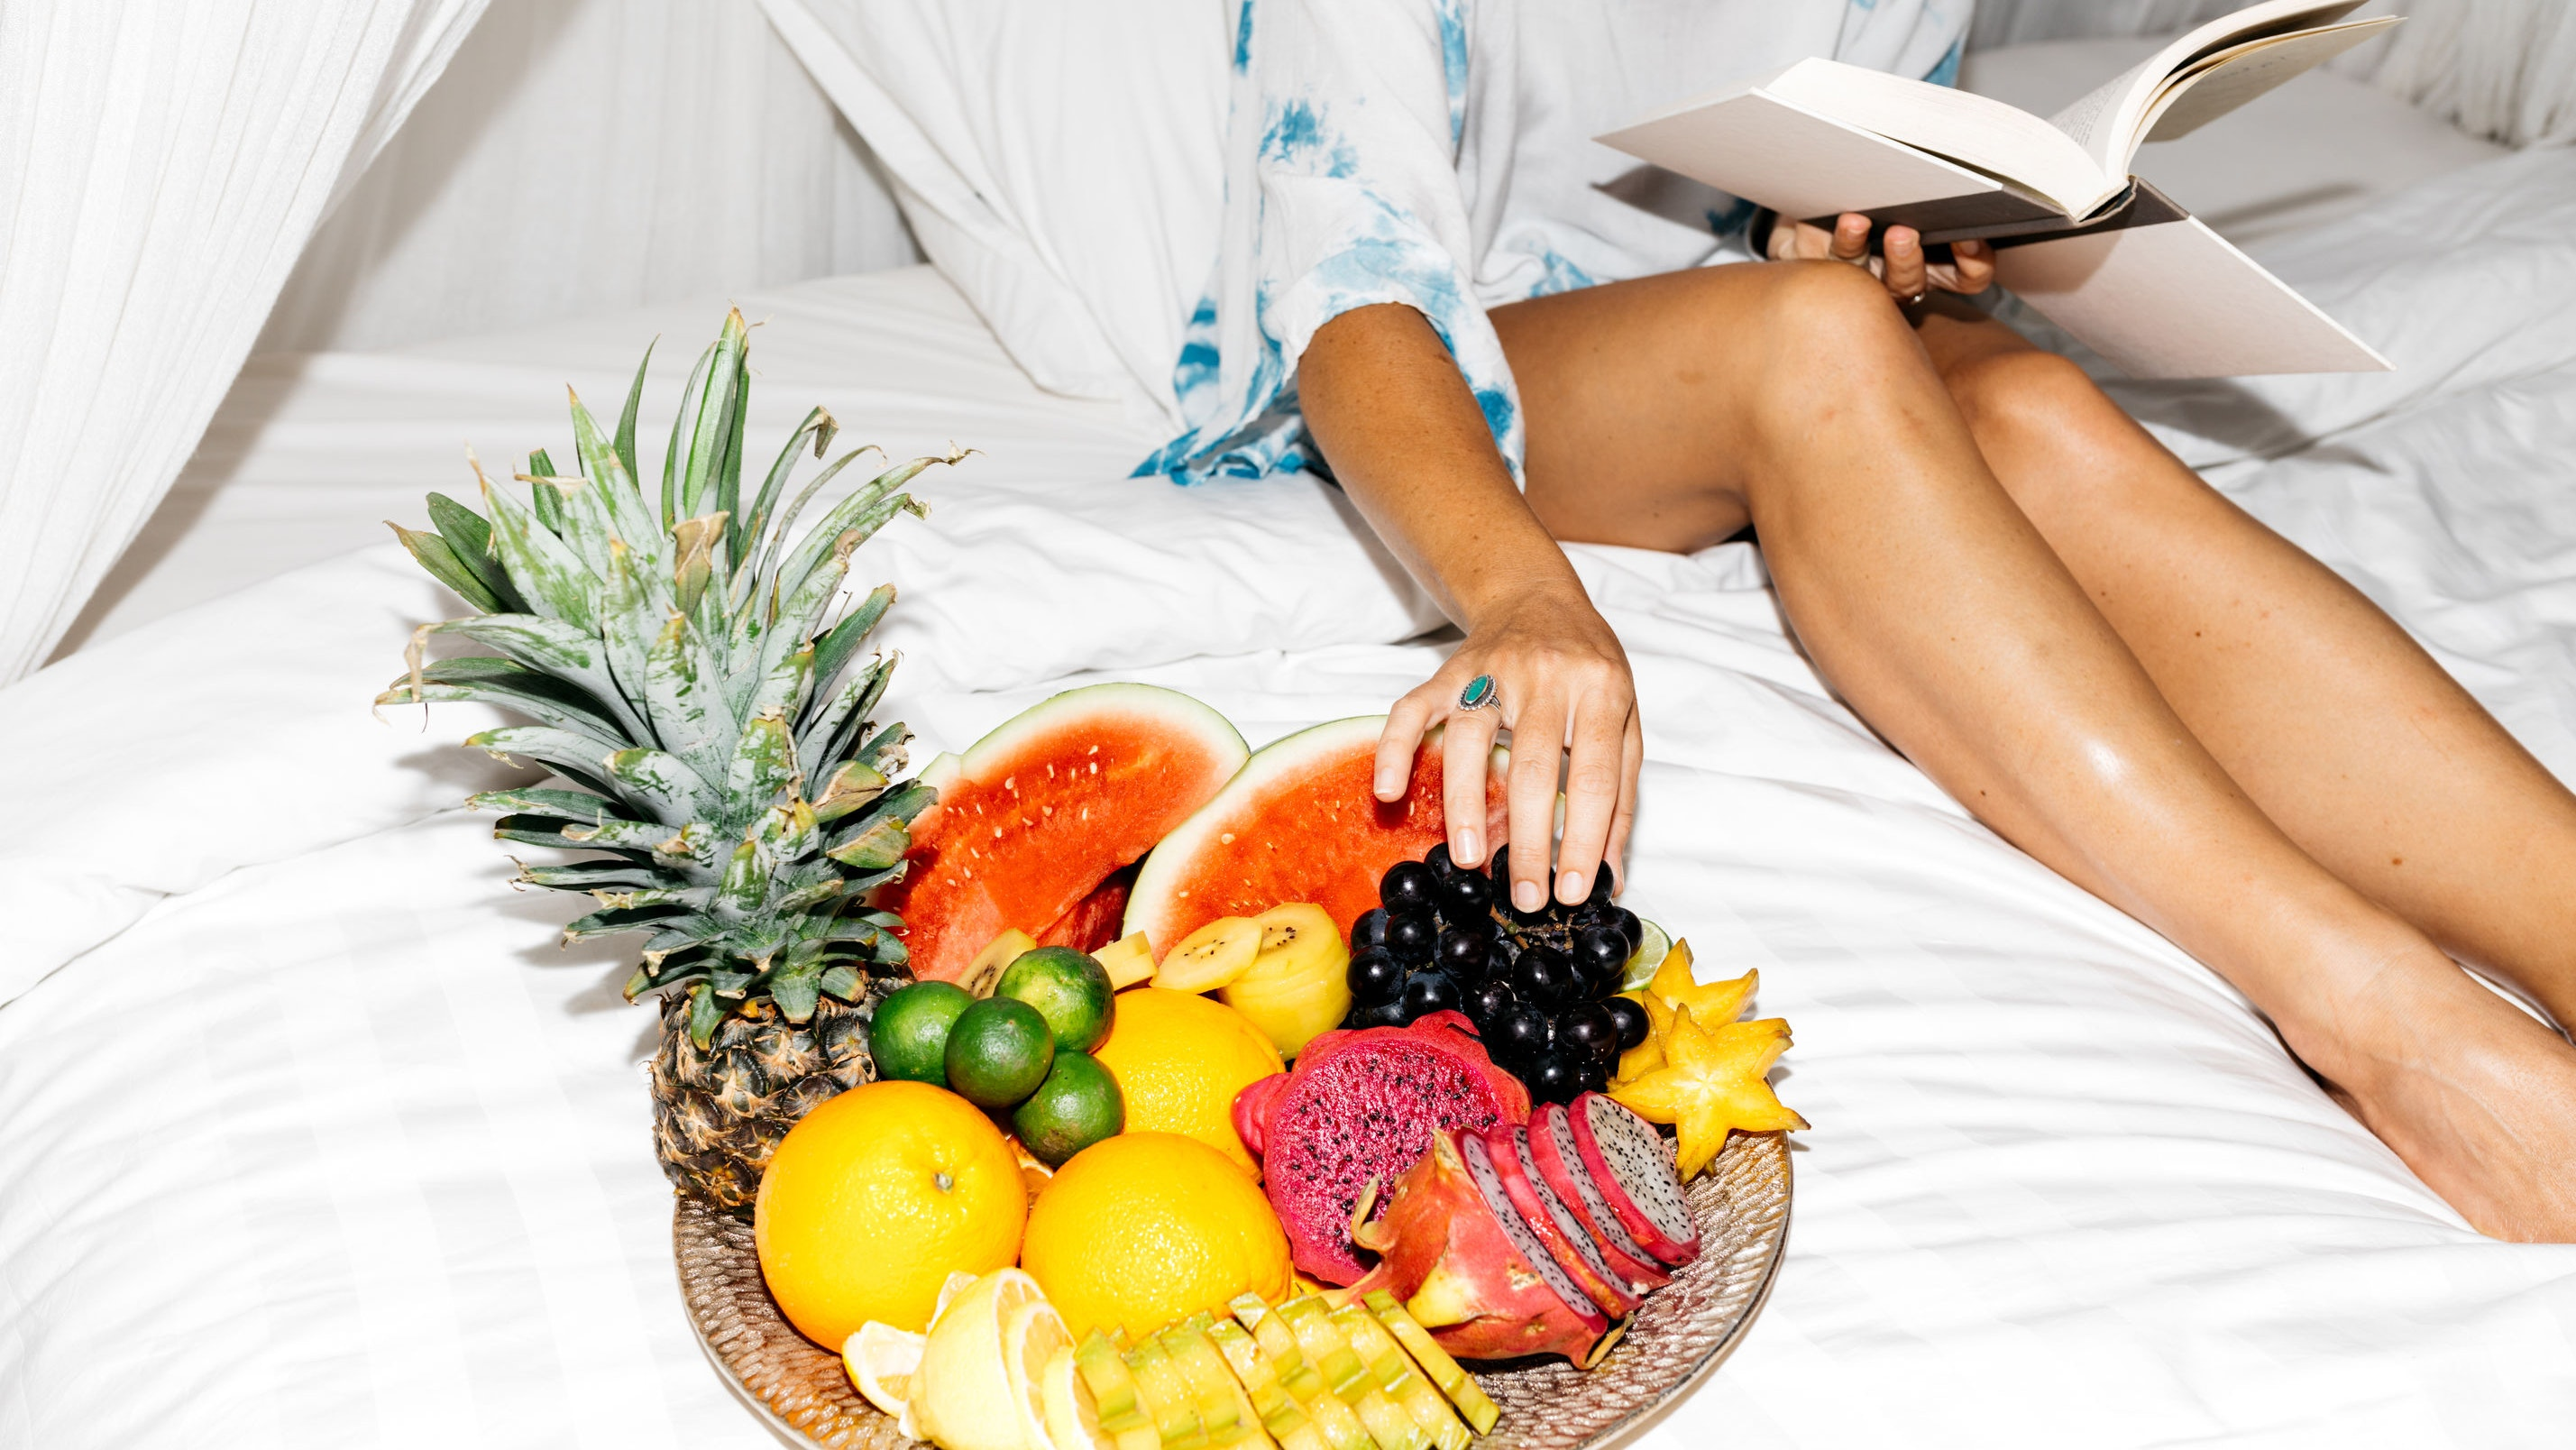 Berries, Salmon, and More Foods That Are Essential to Eat If You Want Gorgeous Skin